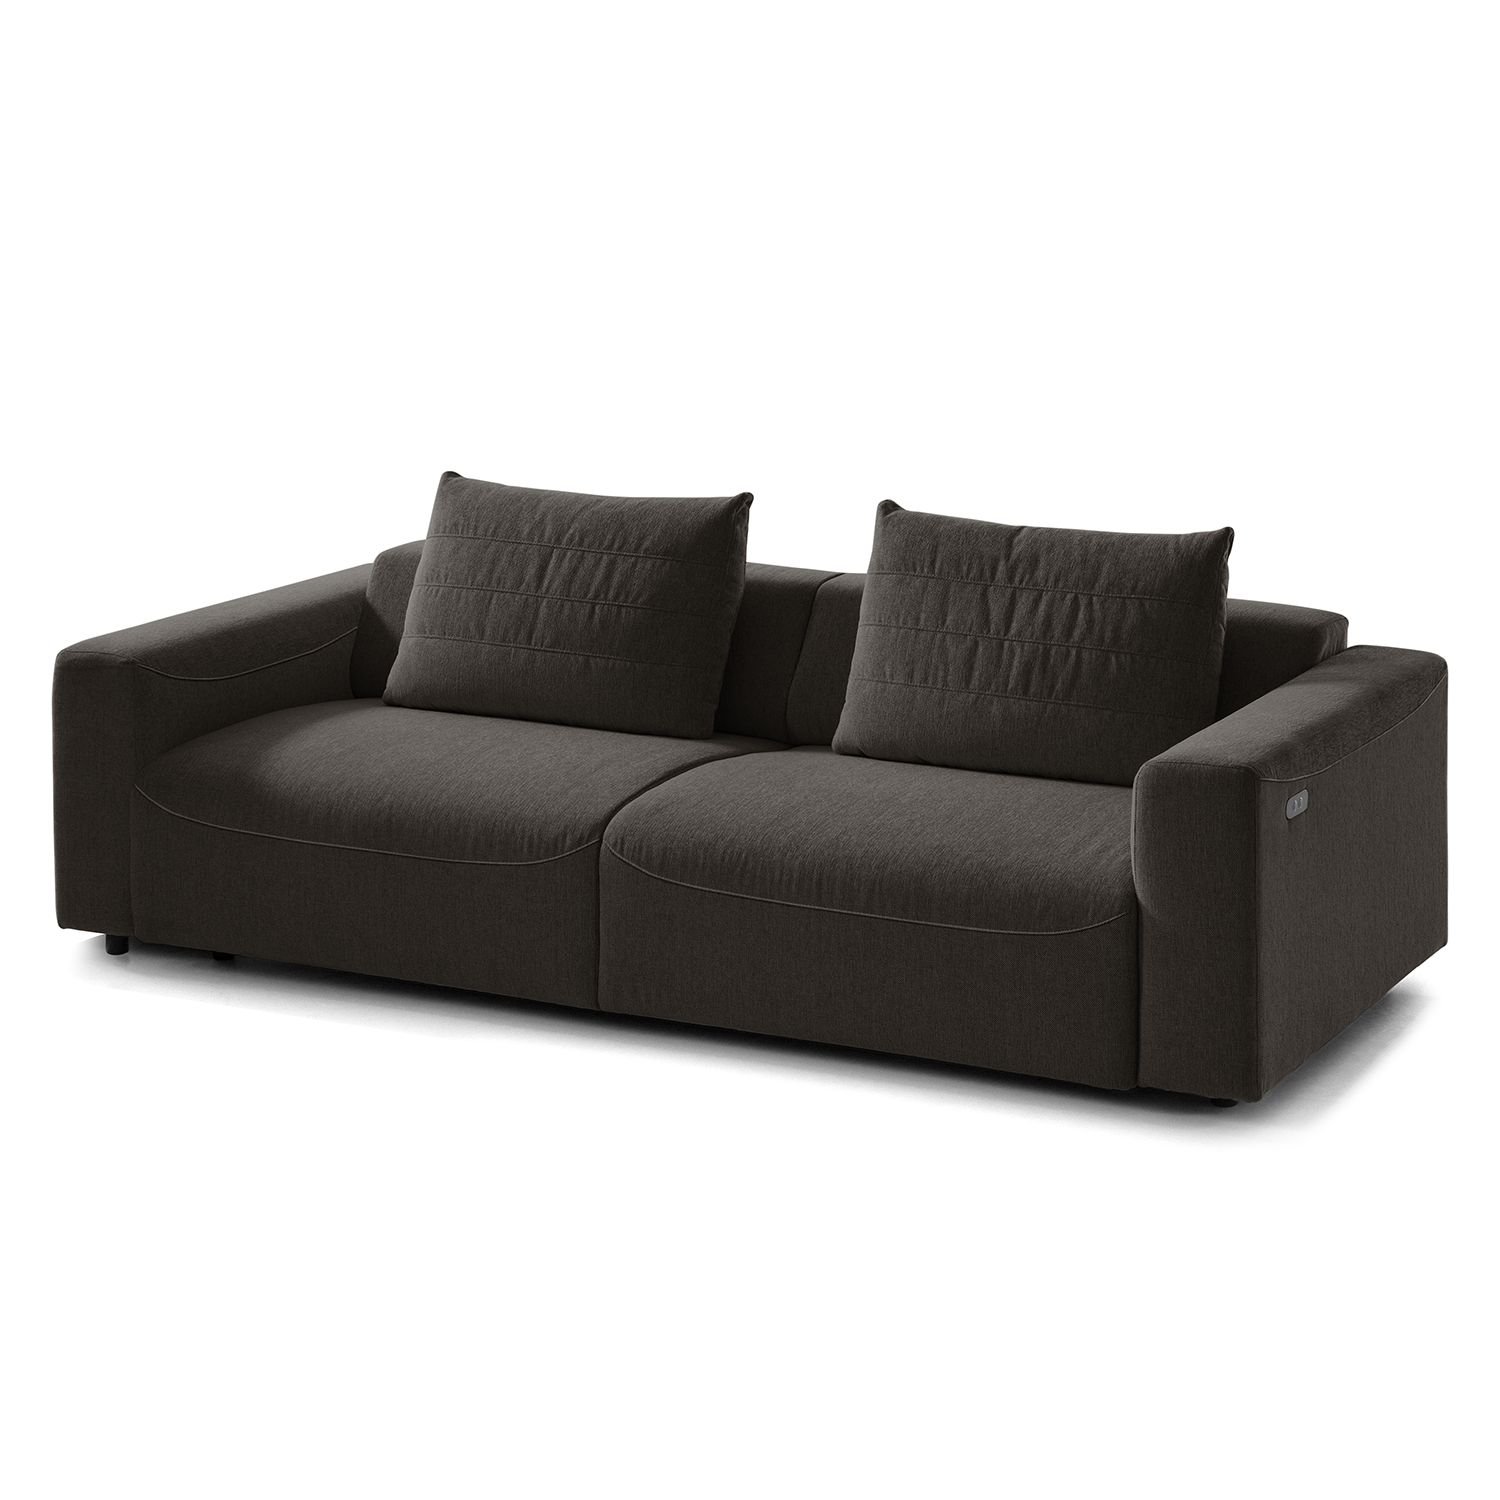 sofa finny 3 sitzer webstoff sitztiefenverstellung stoff saia schwarz braun drk ehrenamt rsk. Black Bedroom Furniture Sets. Home Design Ideas